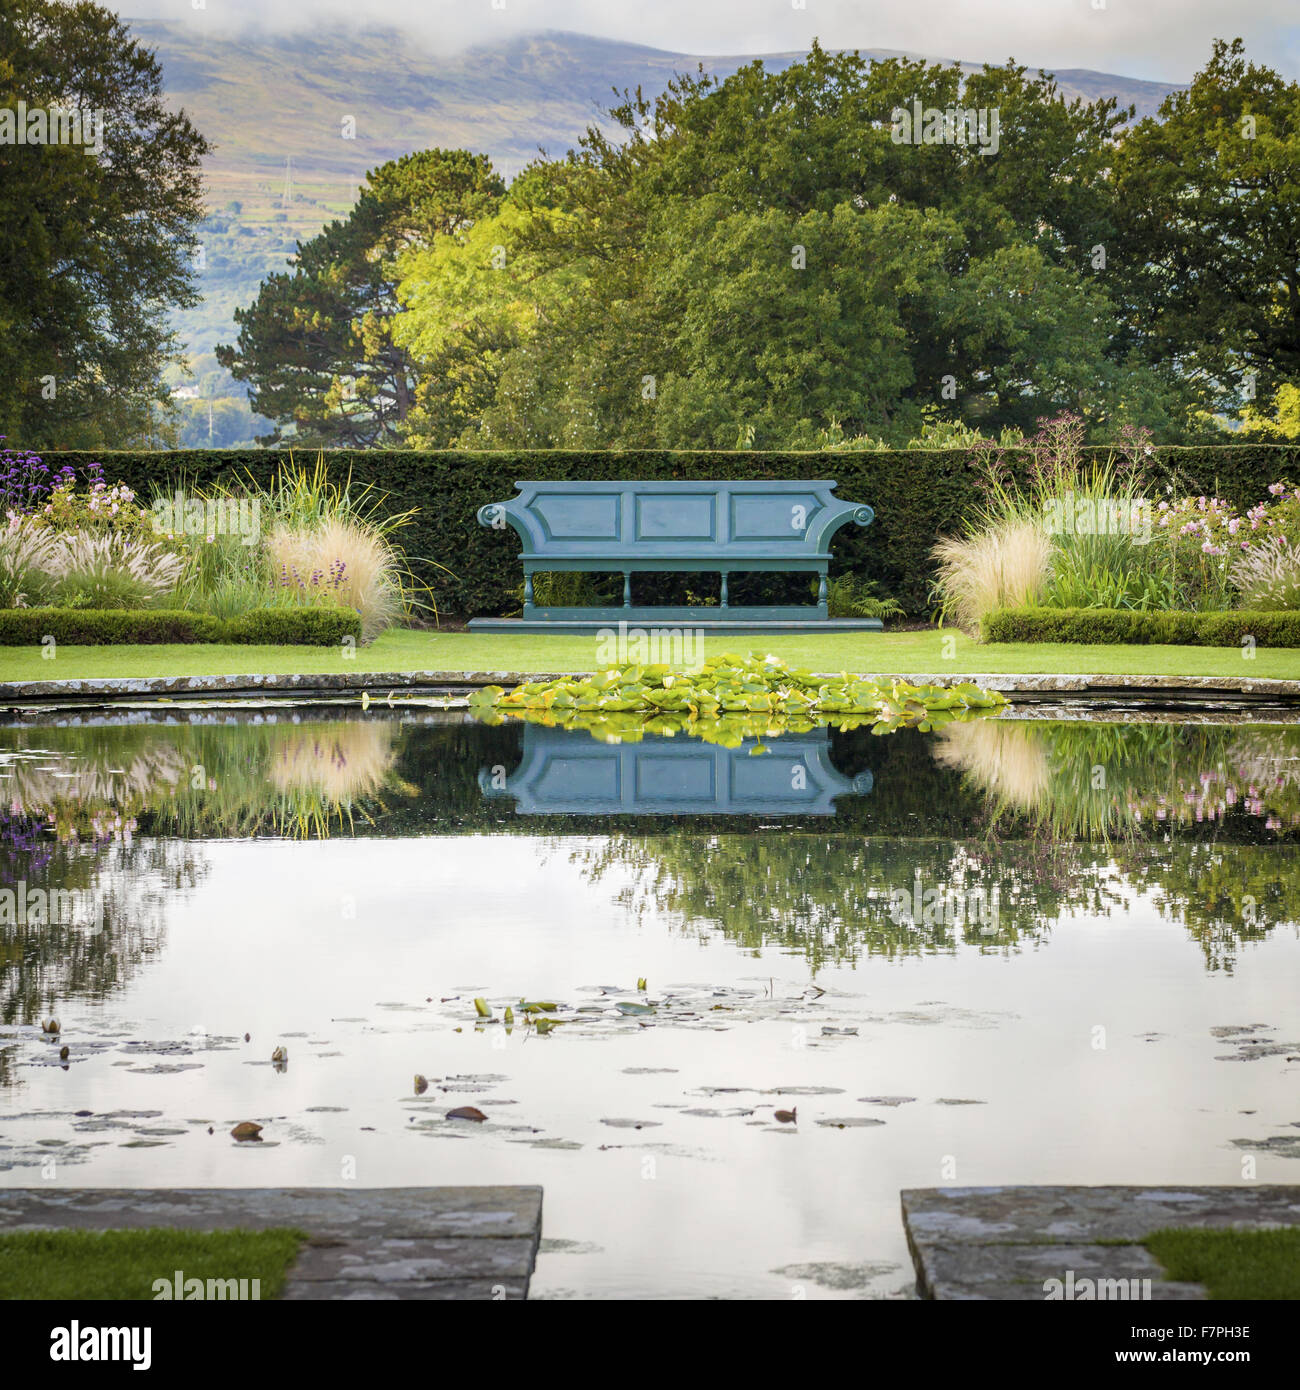 A bench reflected in the still water of a lily pond, on the Lily Terrace at Bodnant Garden, Conwy, Wales, in October. - Stock Image